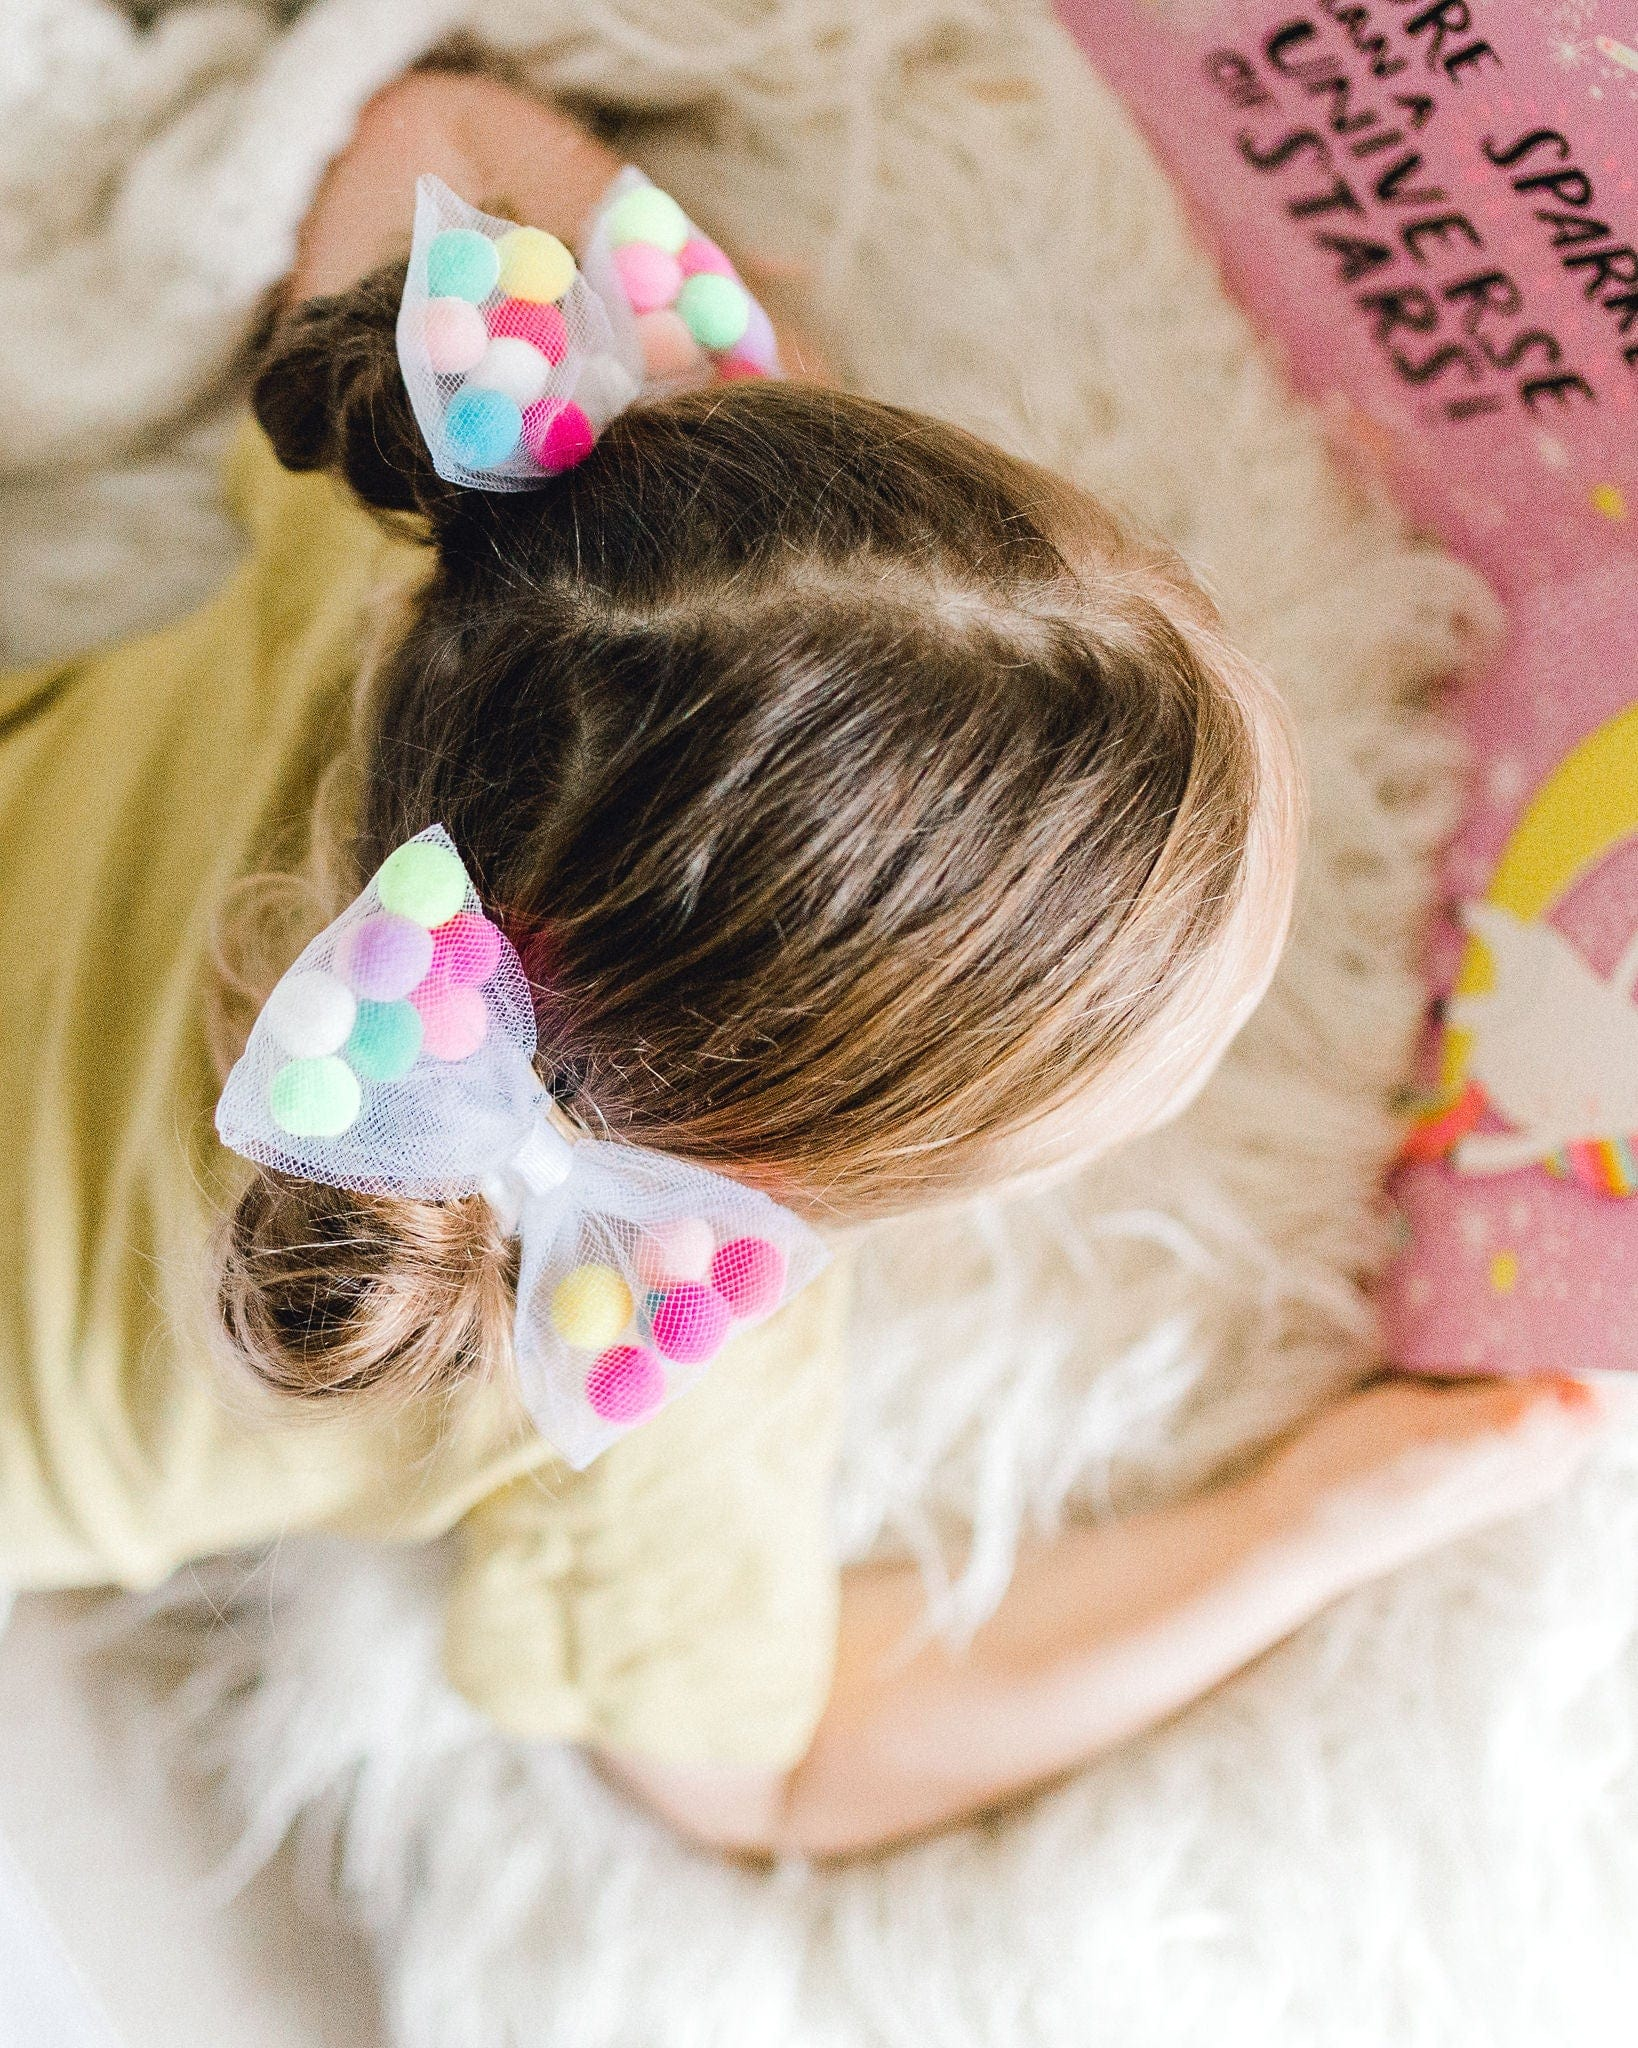 tutu joli hair accessories, pom pom hair ties for kids, ballerina hair ties, pompom hair tie, bow ponytail holder, children hair accessories, white pom pom bow hair tie, white hair ties for kids, white ponytail holders, pig tail holders for girls,